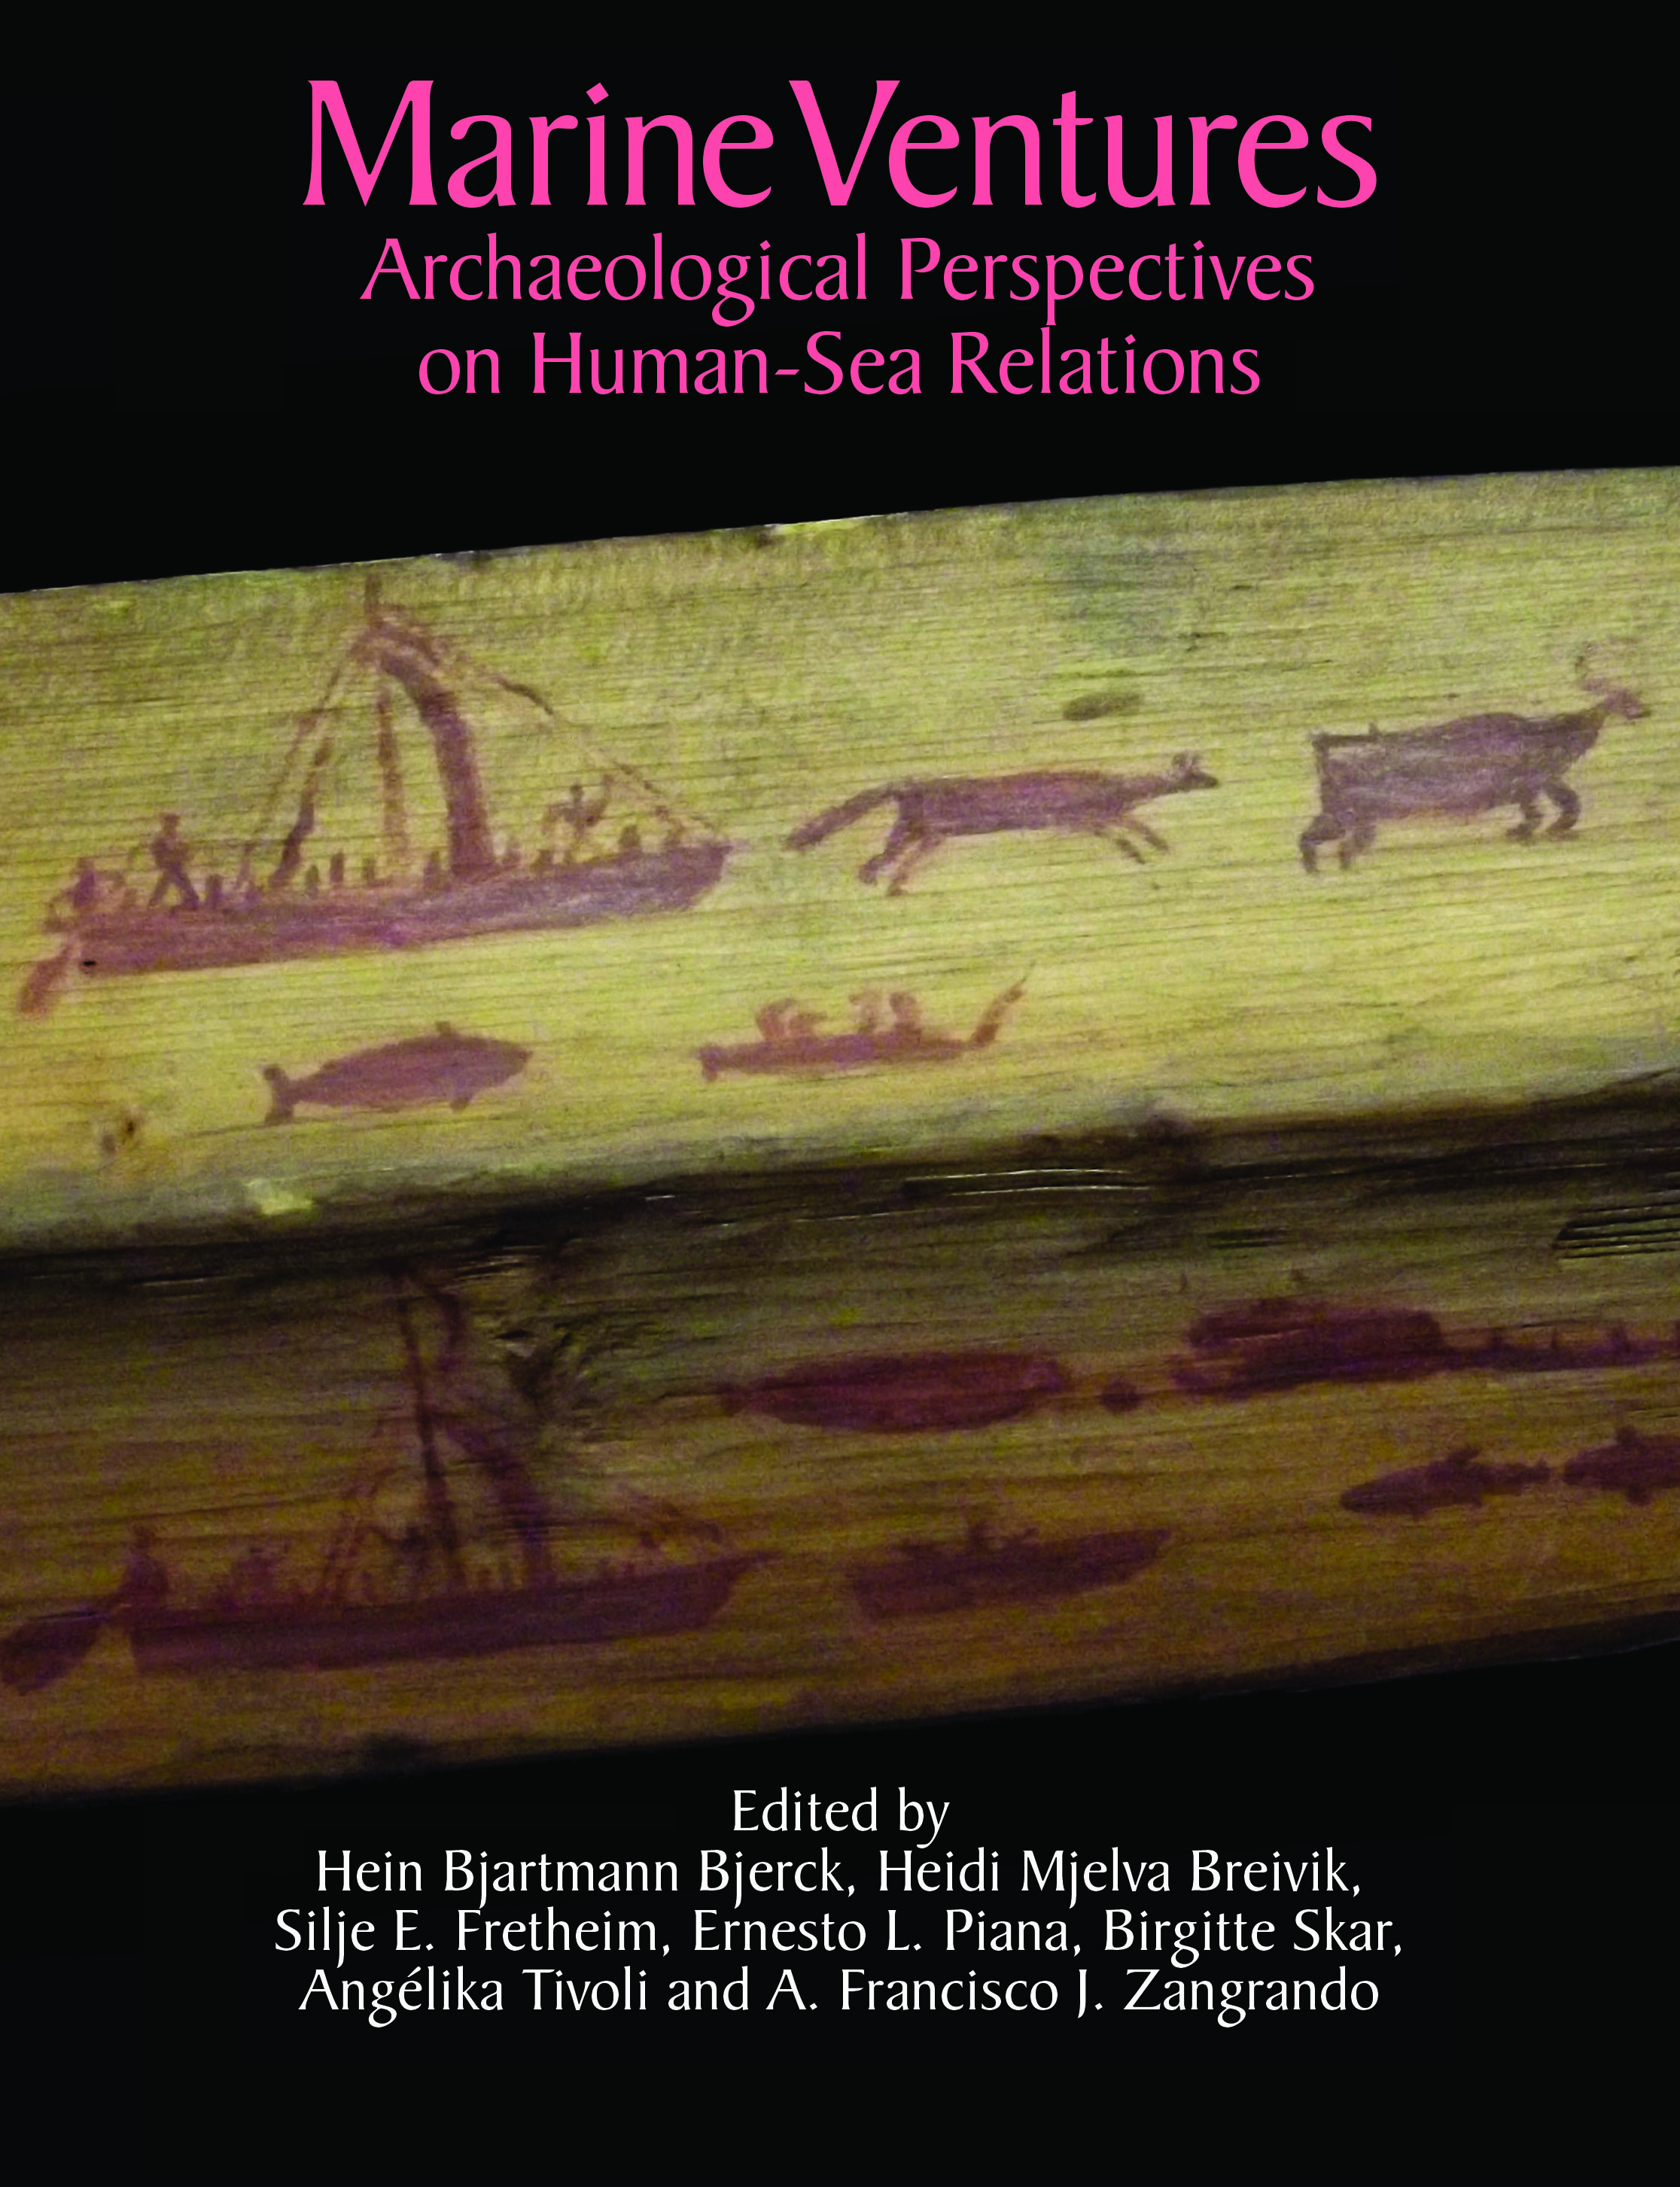 Marine Ventures - Archaeological Perspectives on Human-Sea Relations - Hein B. Bjerck